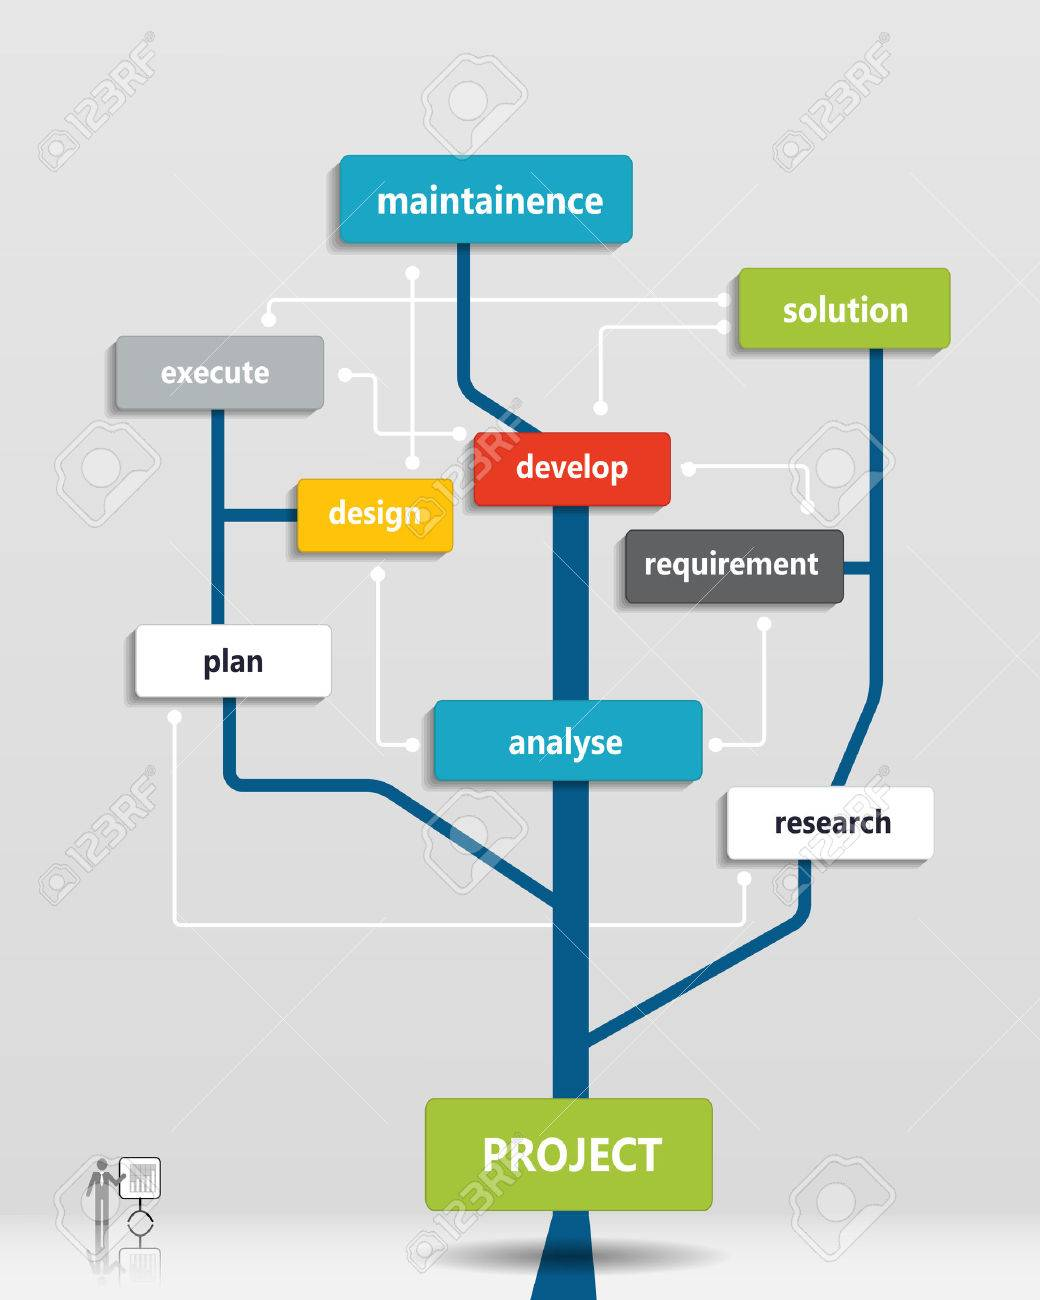 project business plan tree time line operations financial